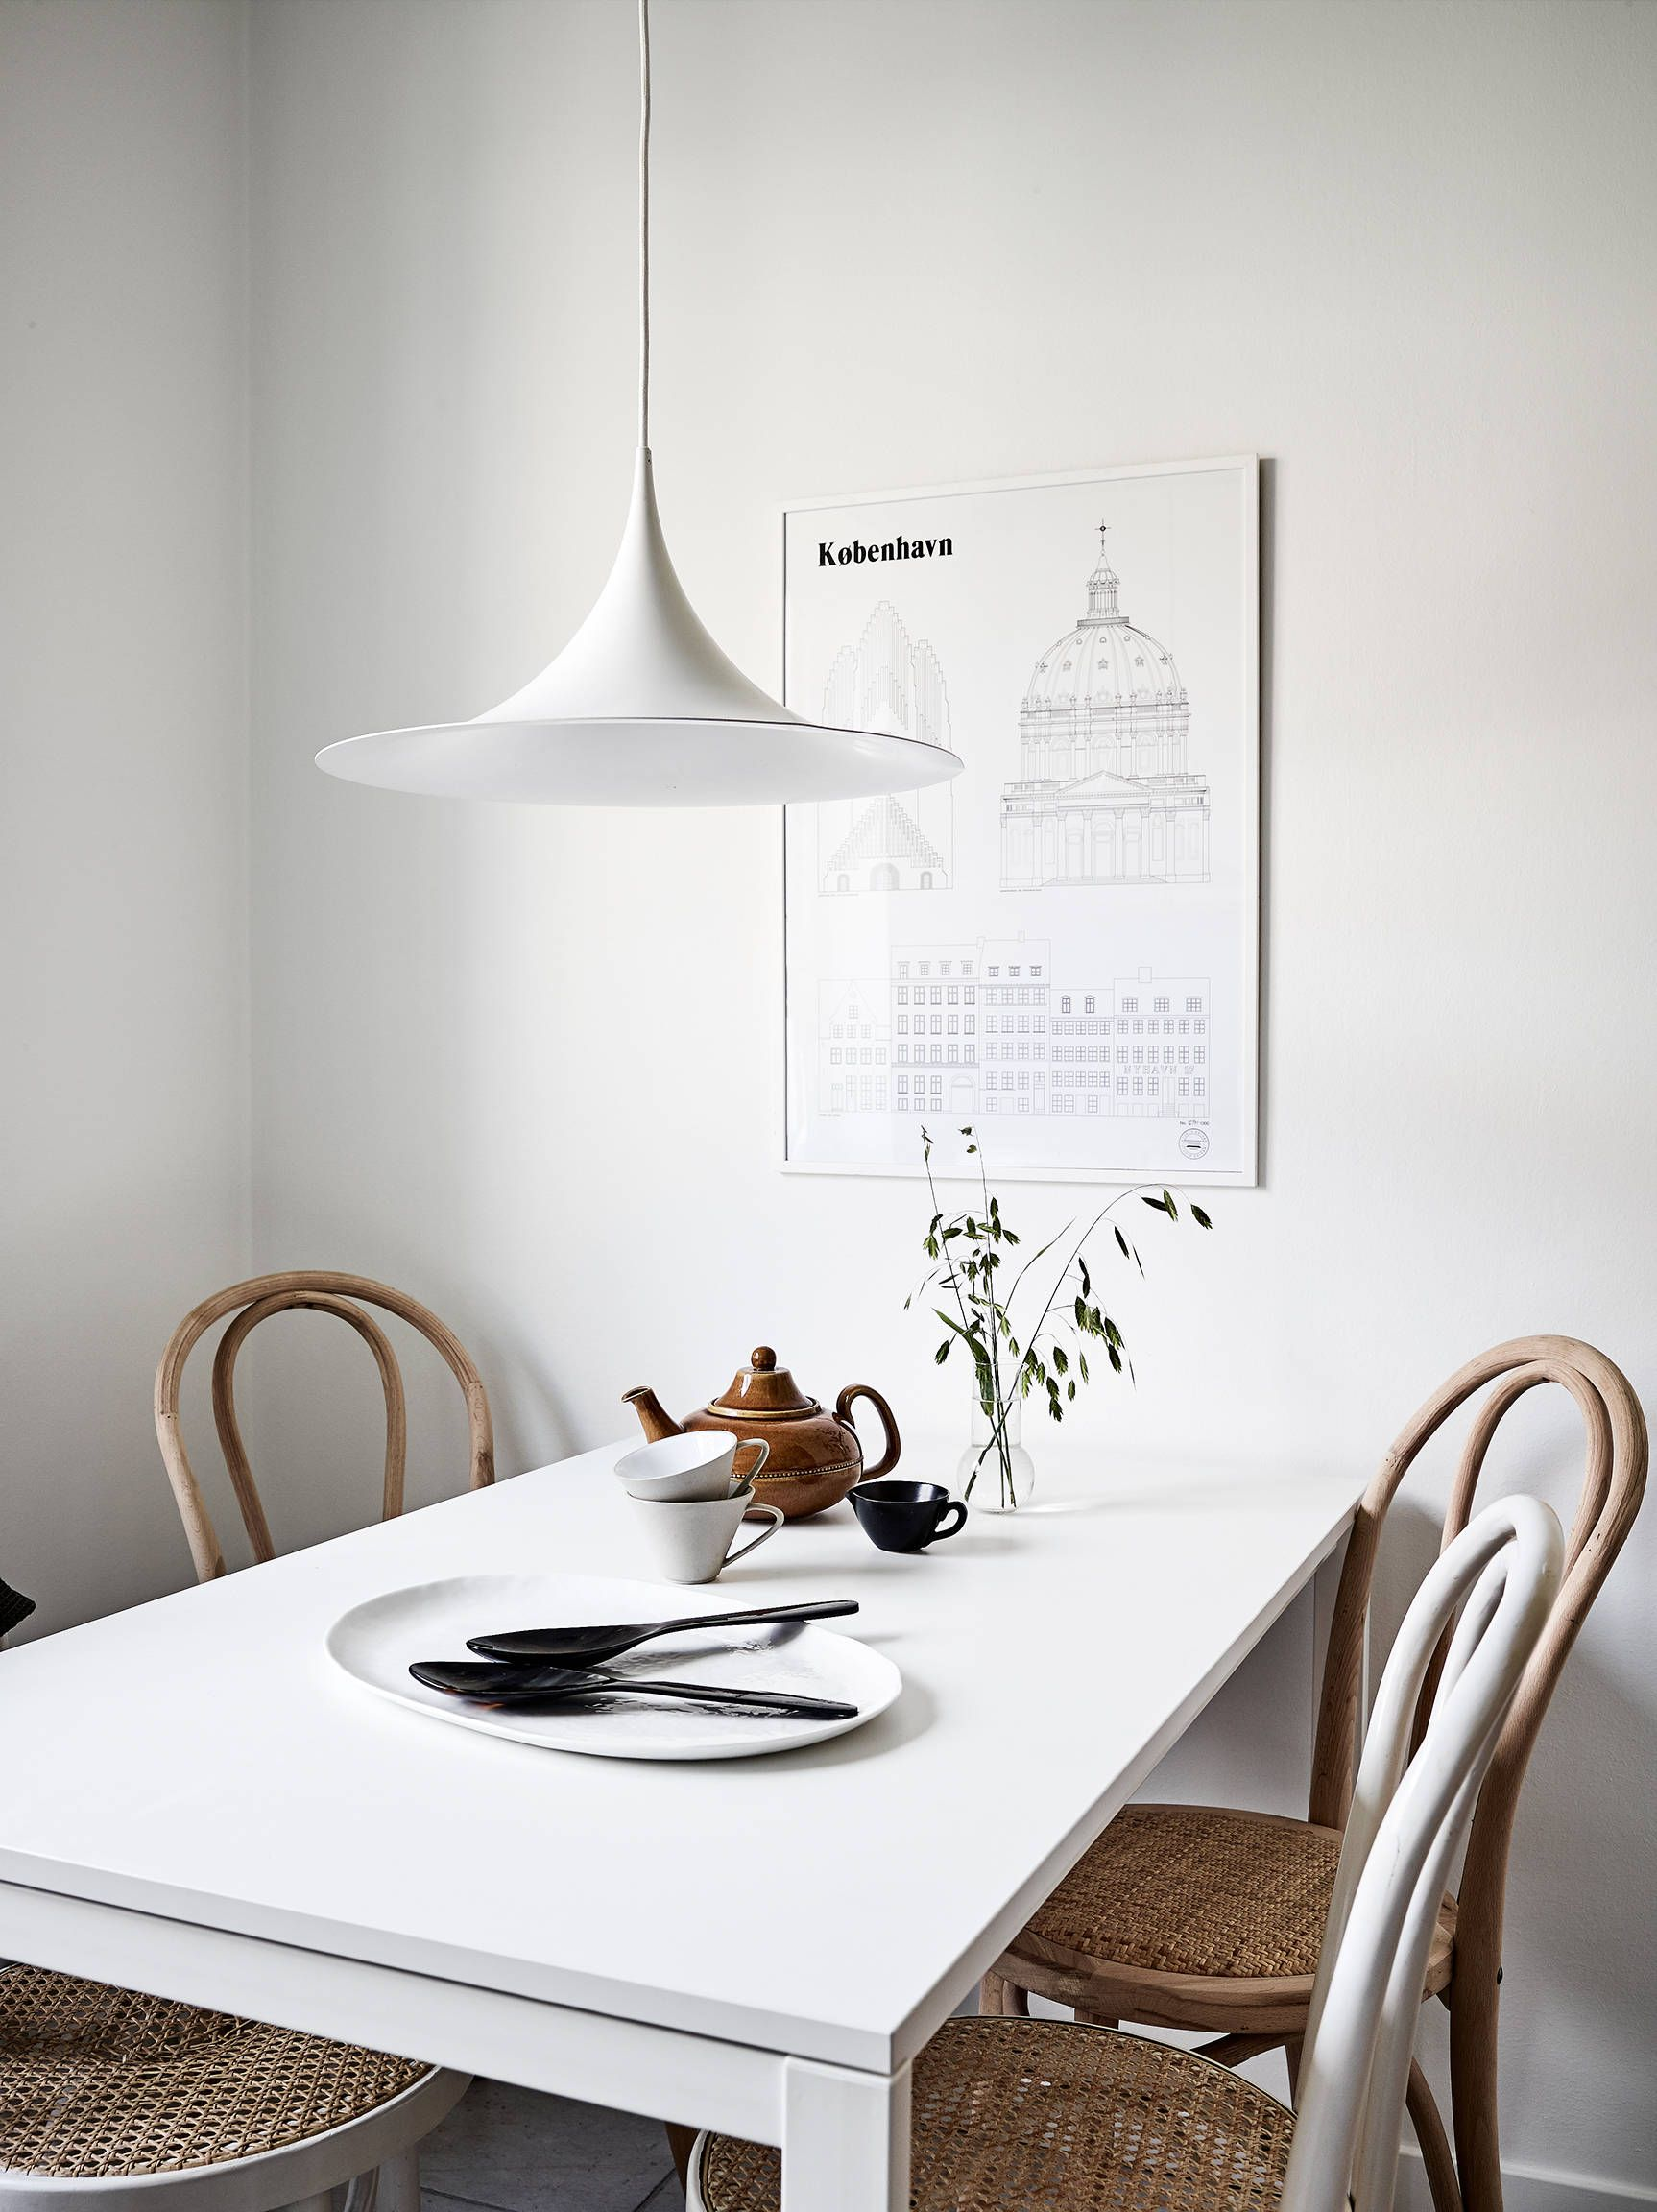 Is To Me | #interior inspiration #diningroom Poster available at ...